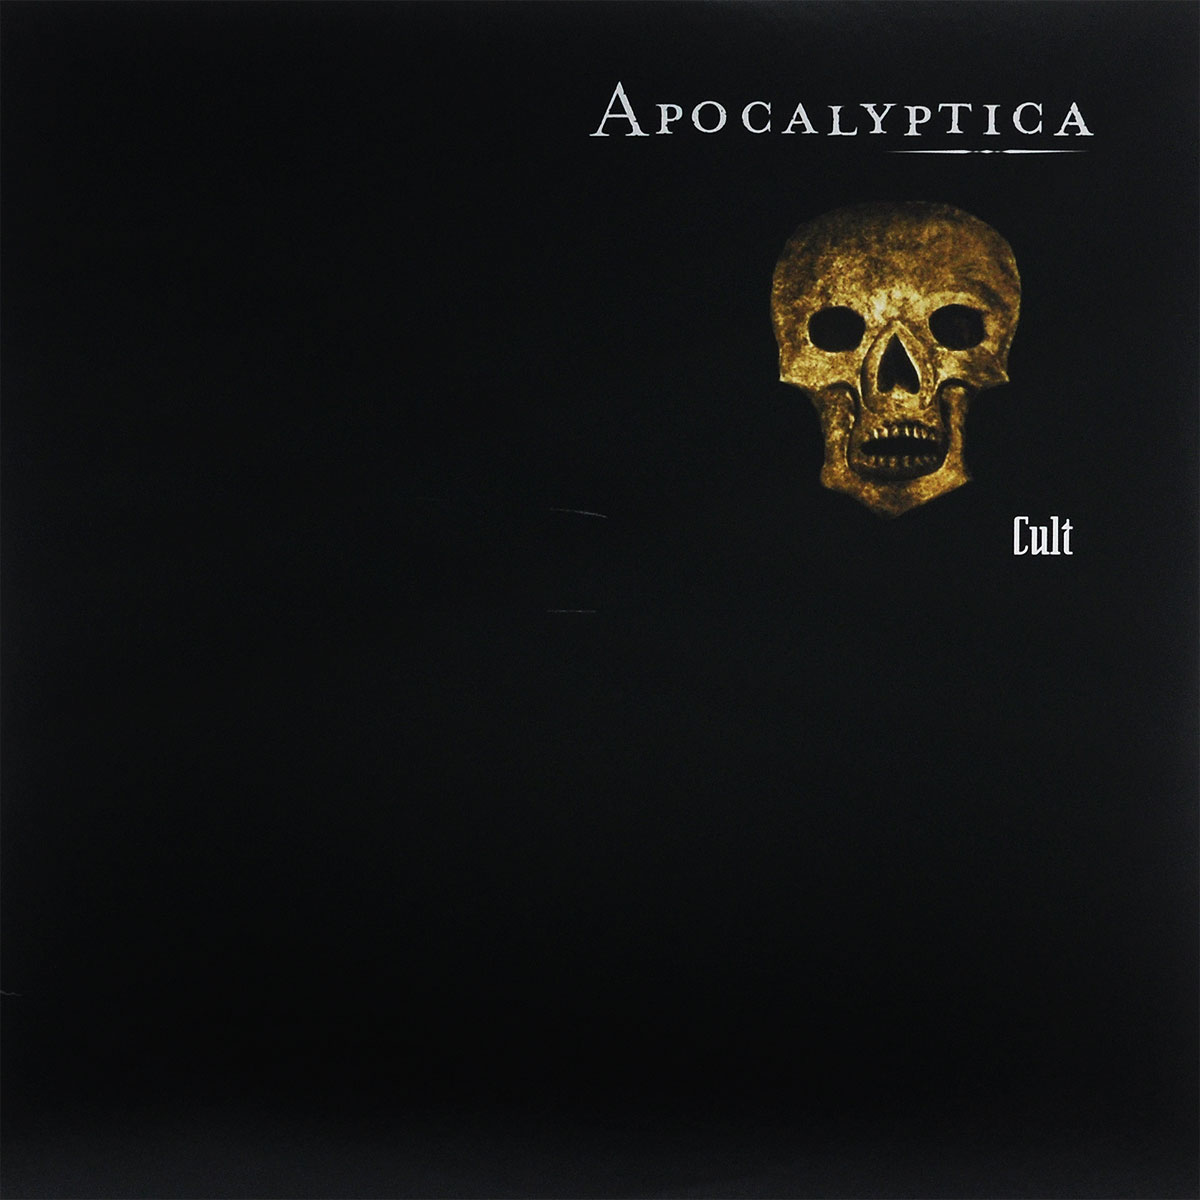 Apocalyptica Apocalyptica. Cult (2 LP + CD) барбра стрейзанд barbra streisand partners 2 lp cd